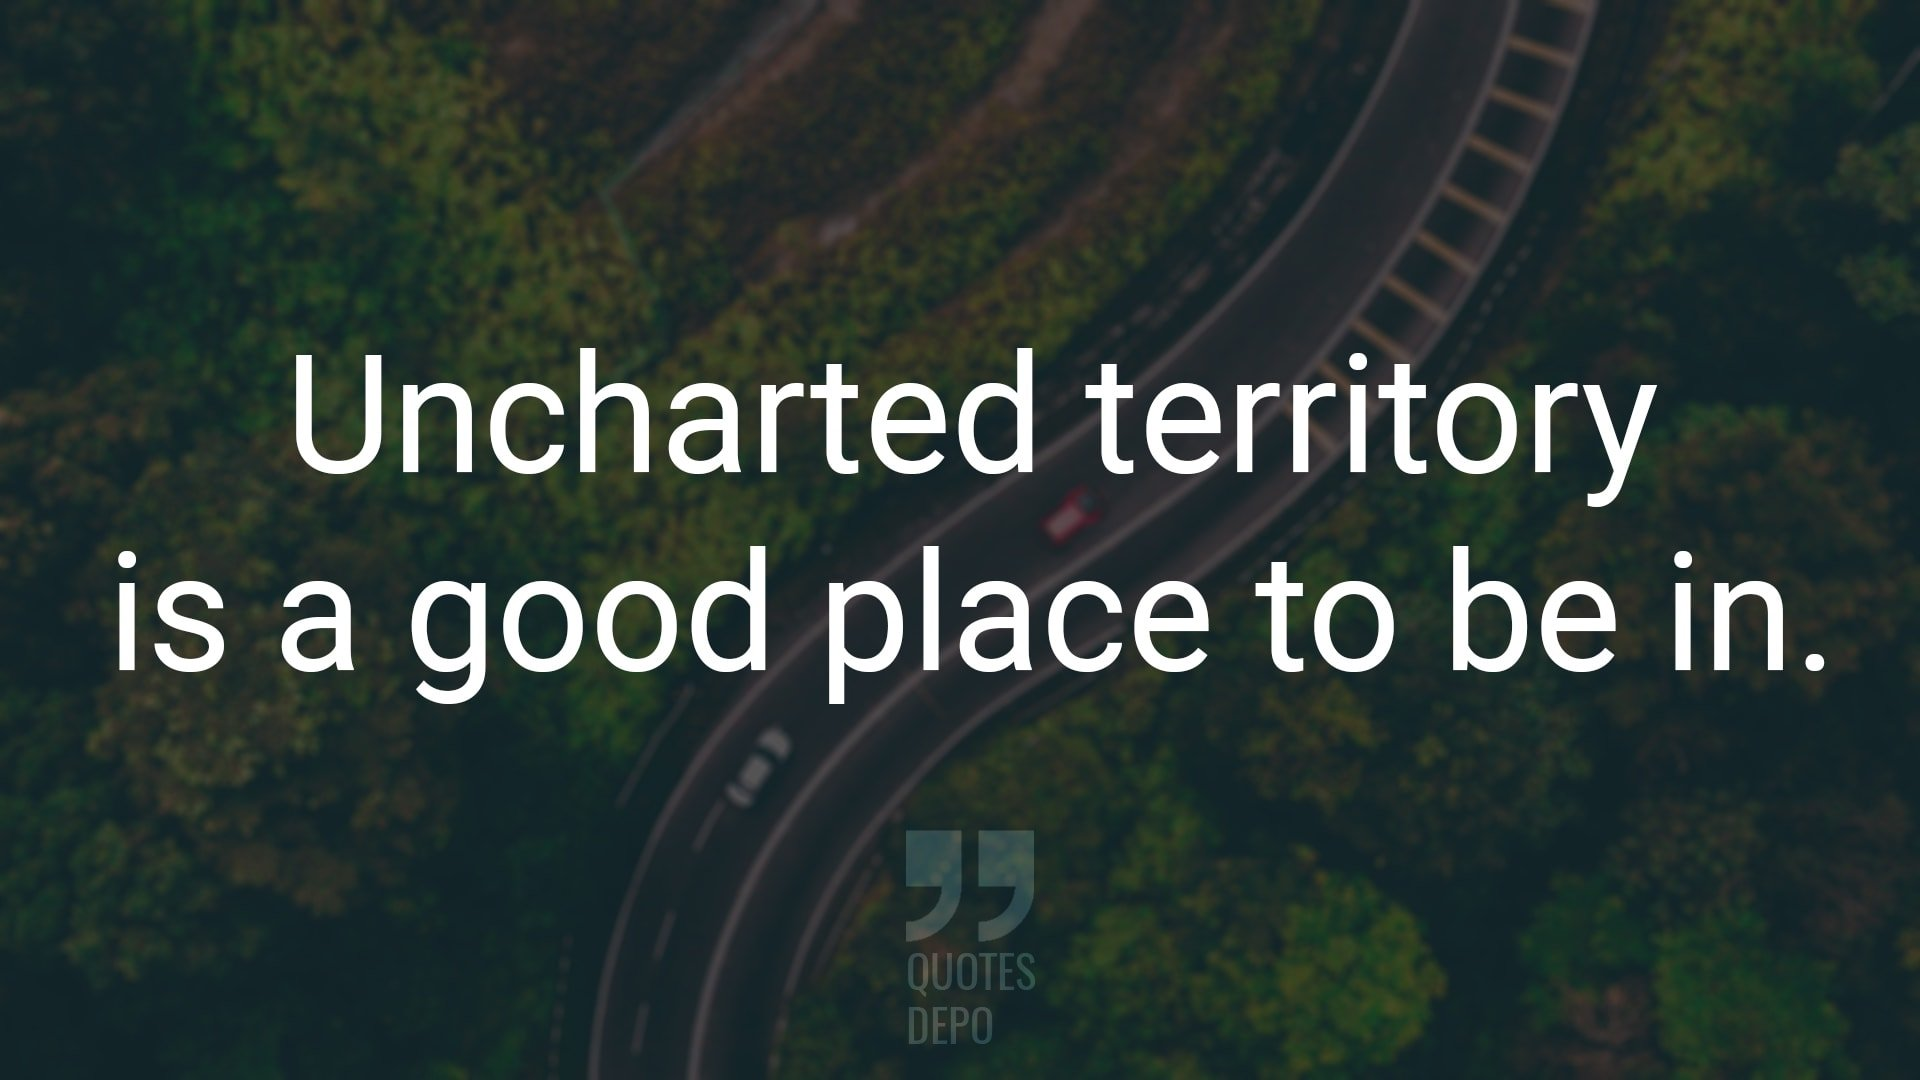 Uncharted Territory is a Good Place